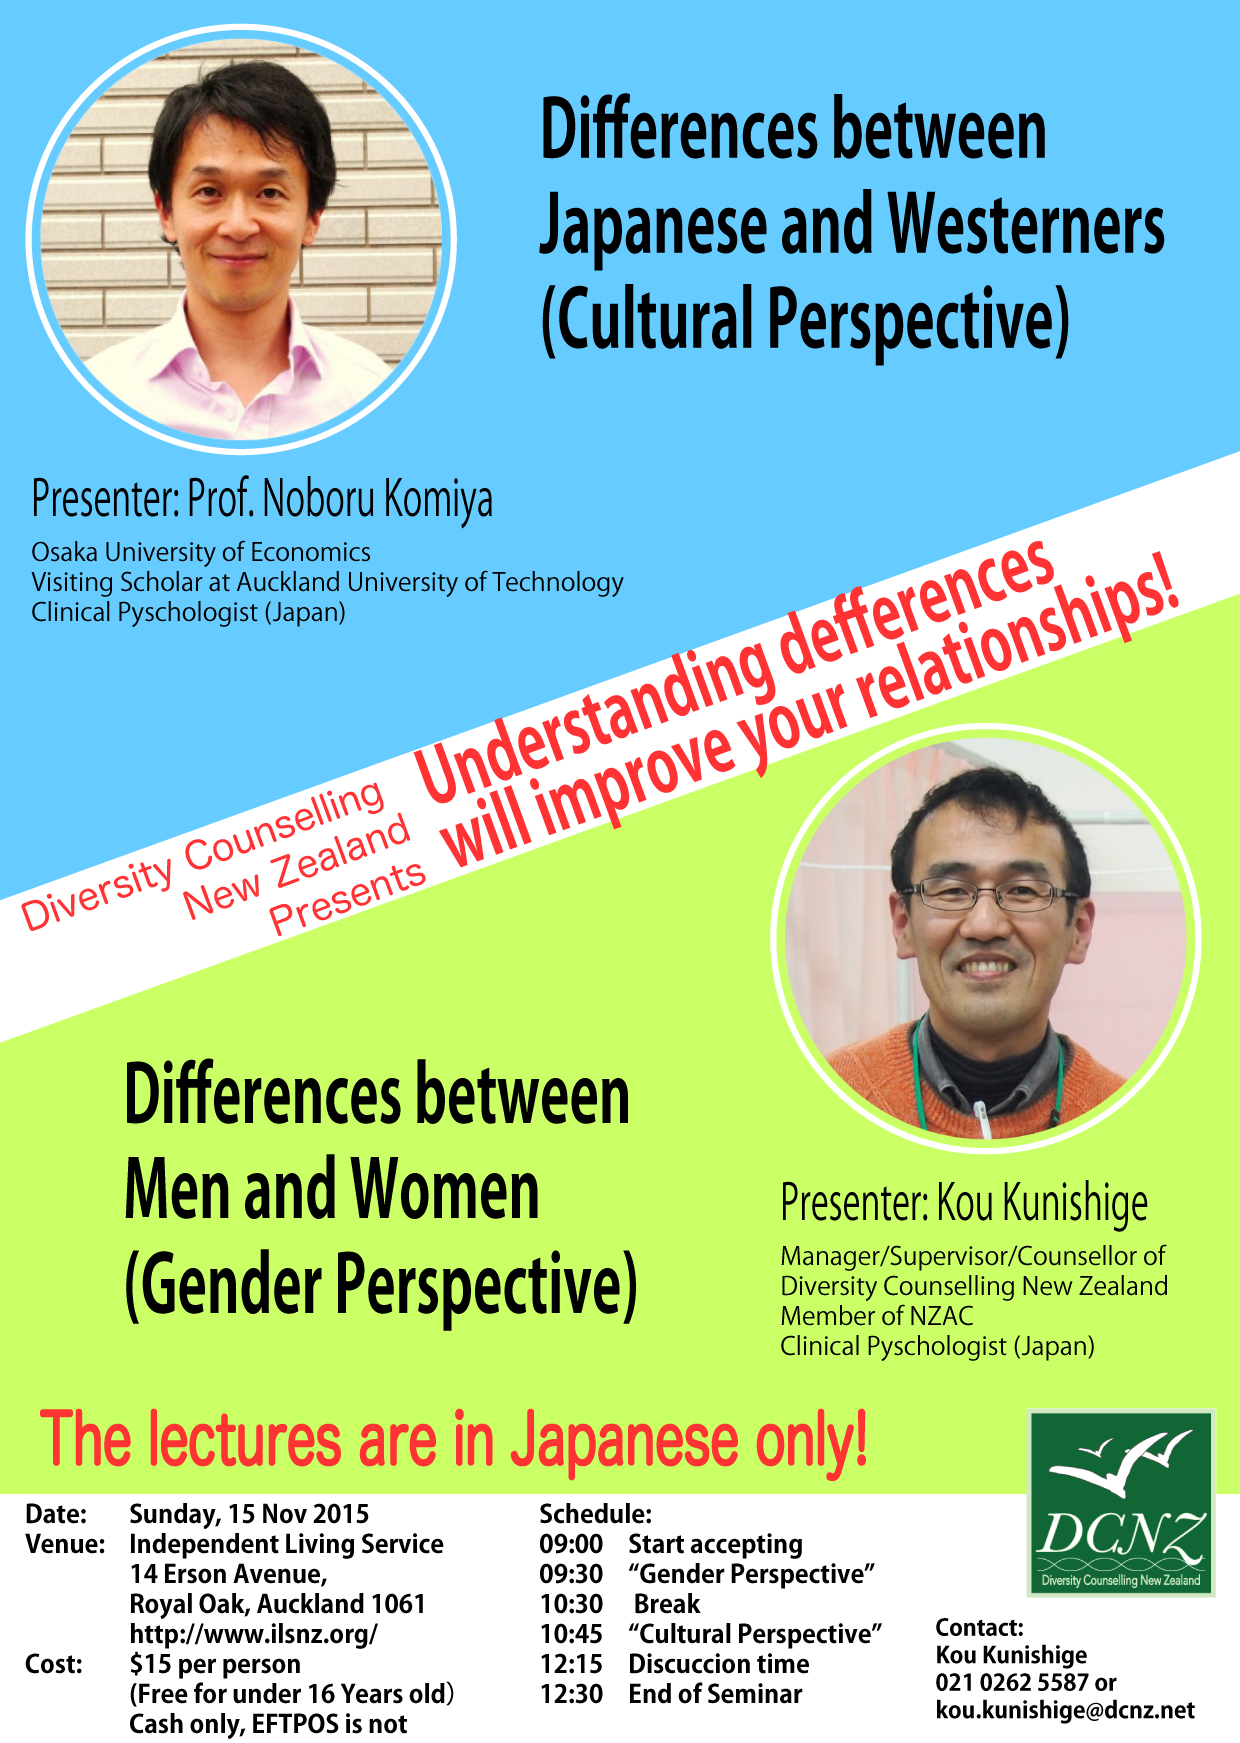 DCNZ CD_JPN010-15Nov2015 in Auckland ENG